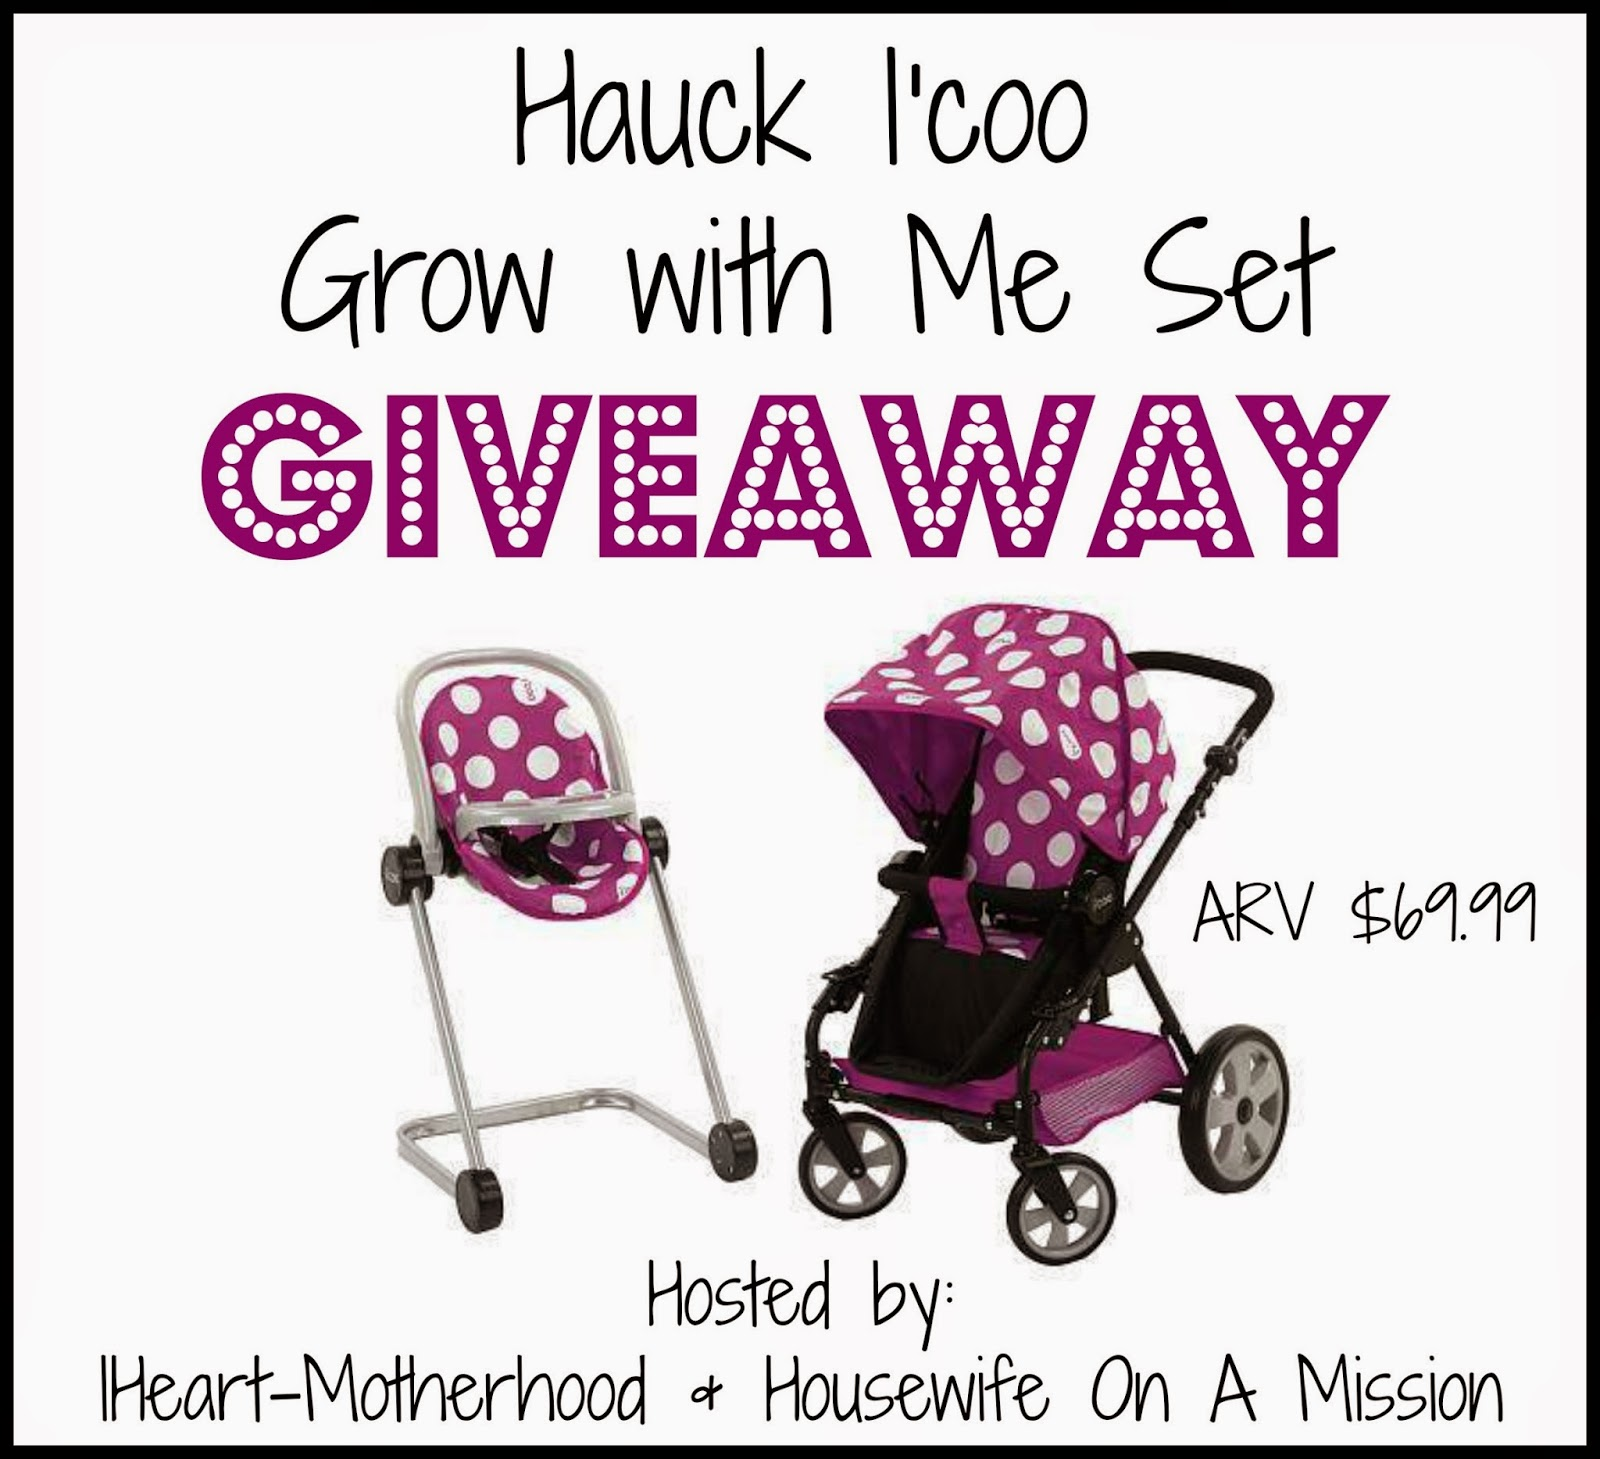 Hauck I'coo Grow with Me Set Giveaway